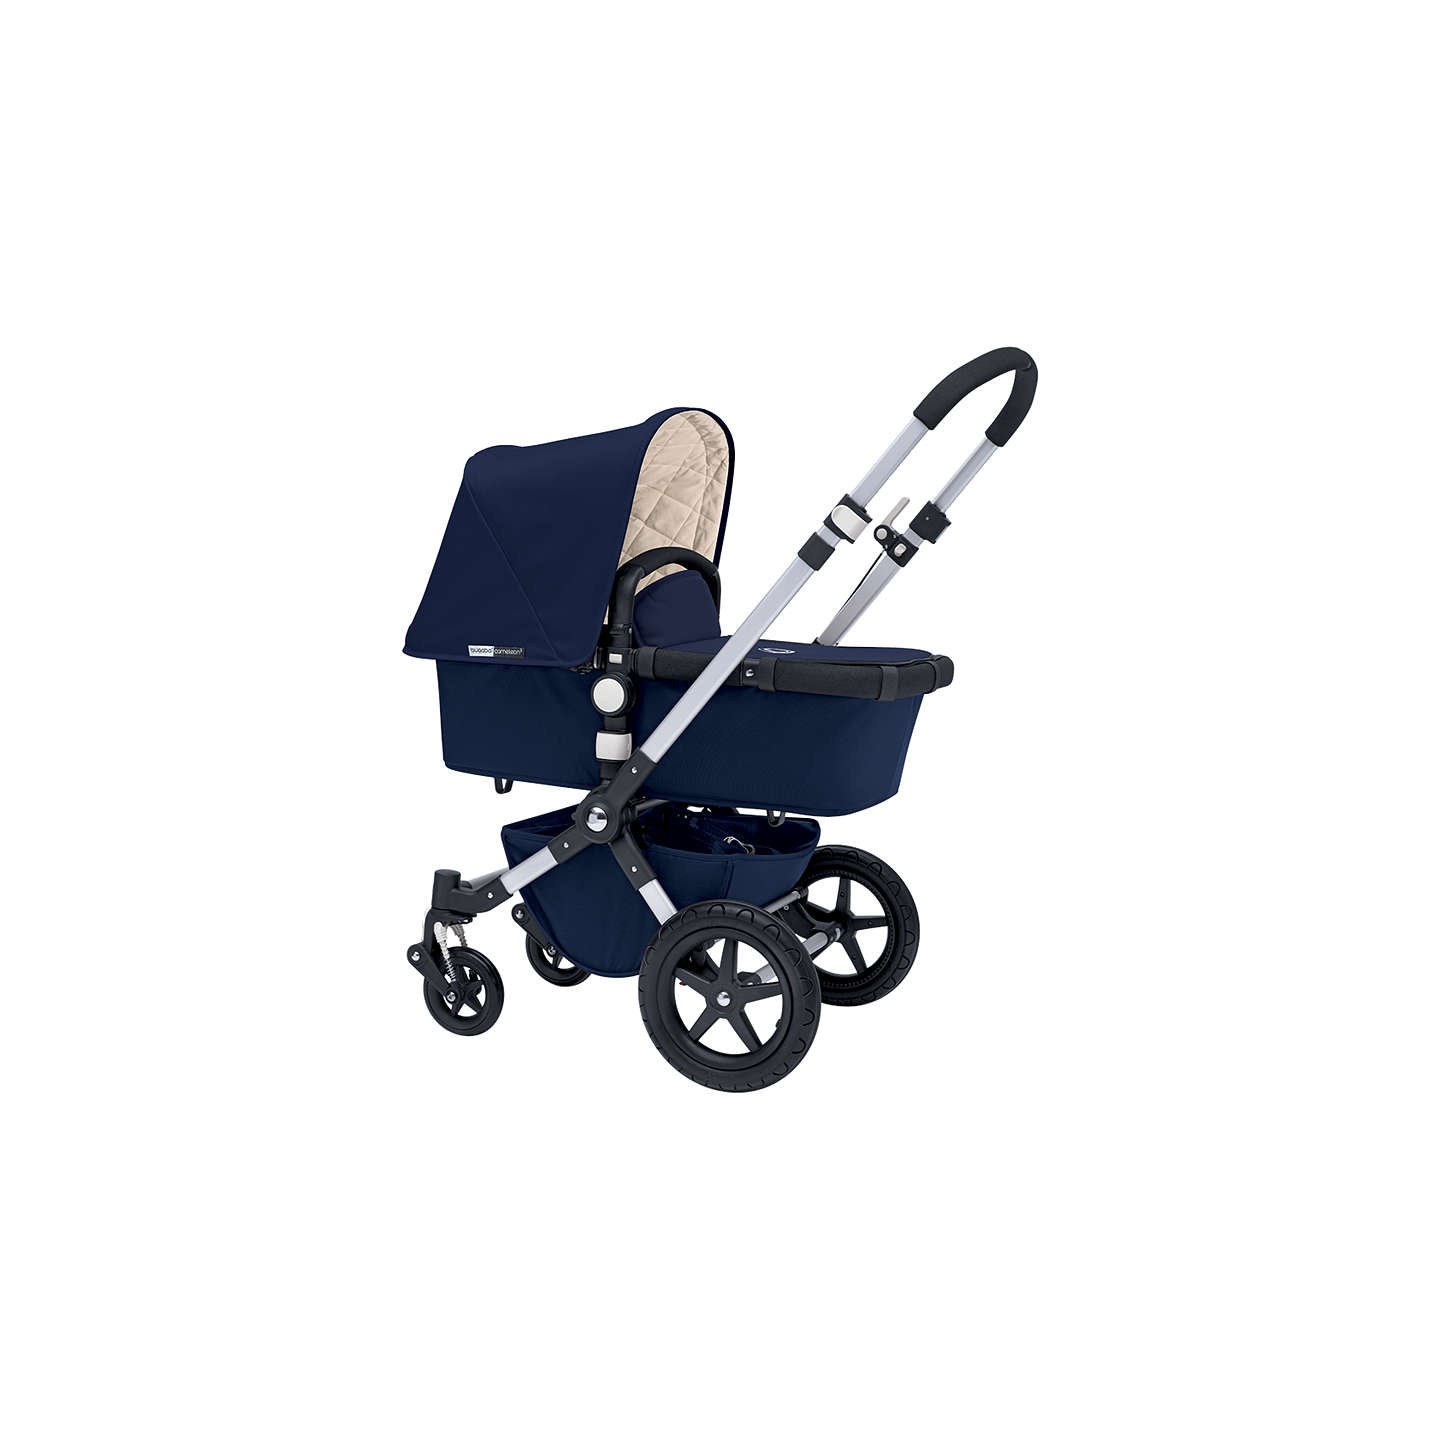 BuyBugaboo Cameleon3 Pram Base with Classic Navy Fabric Online at johnlewis.com